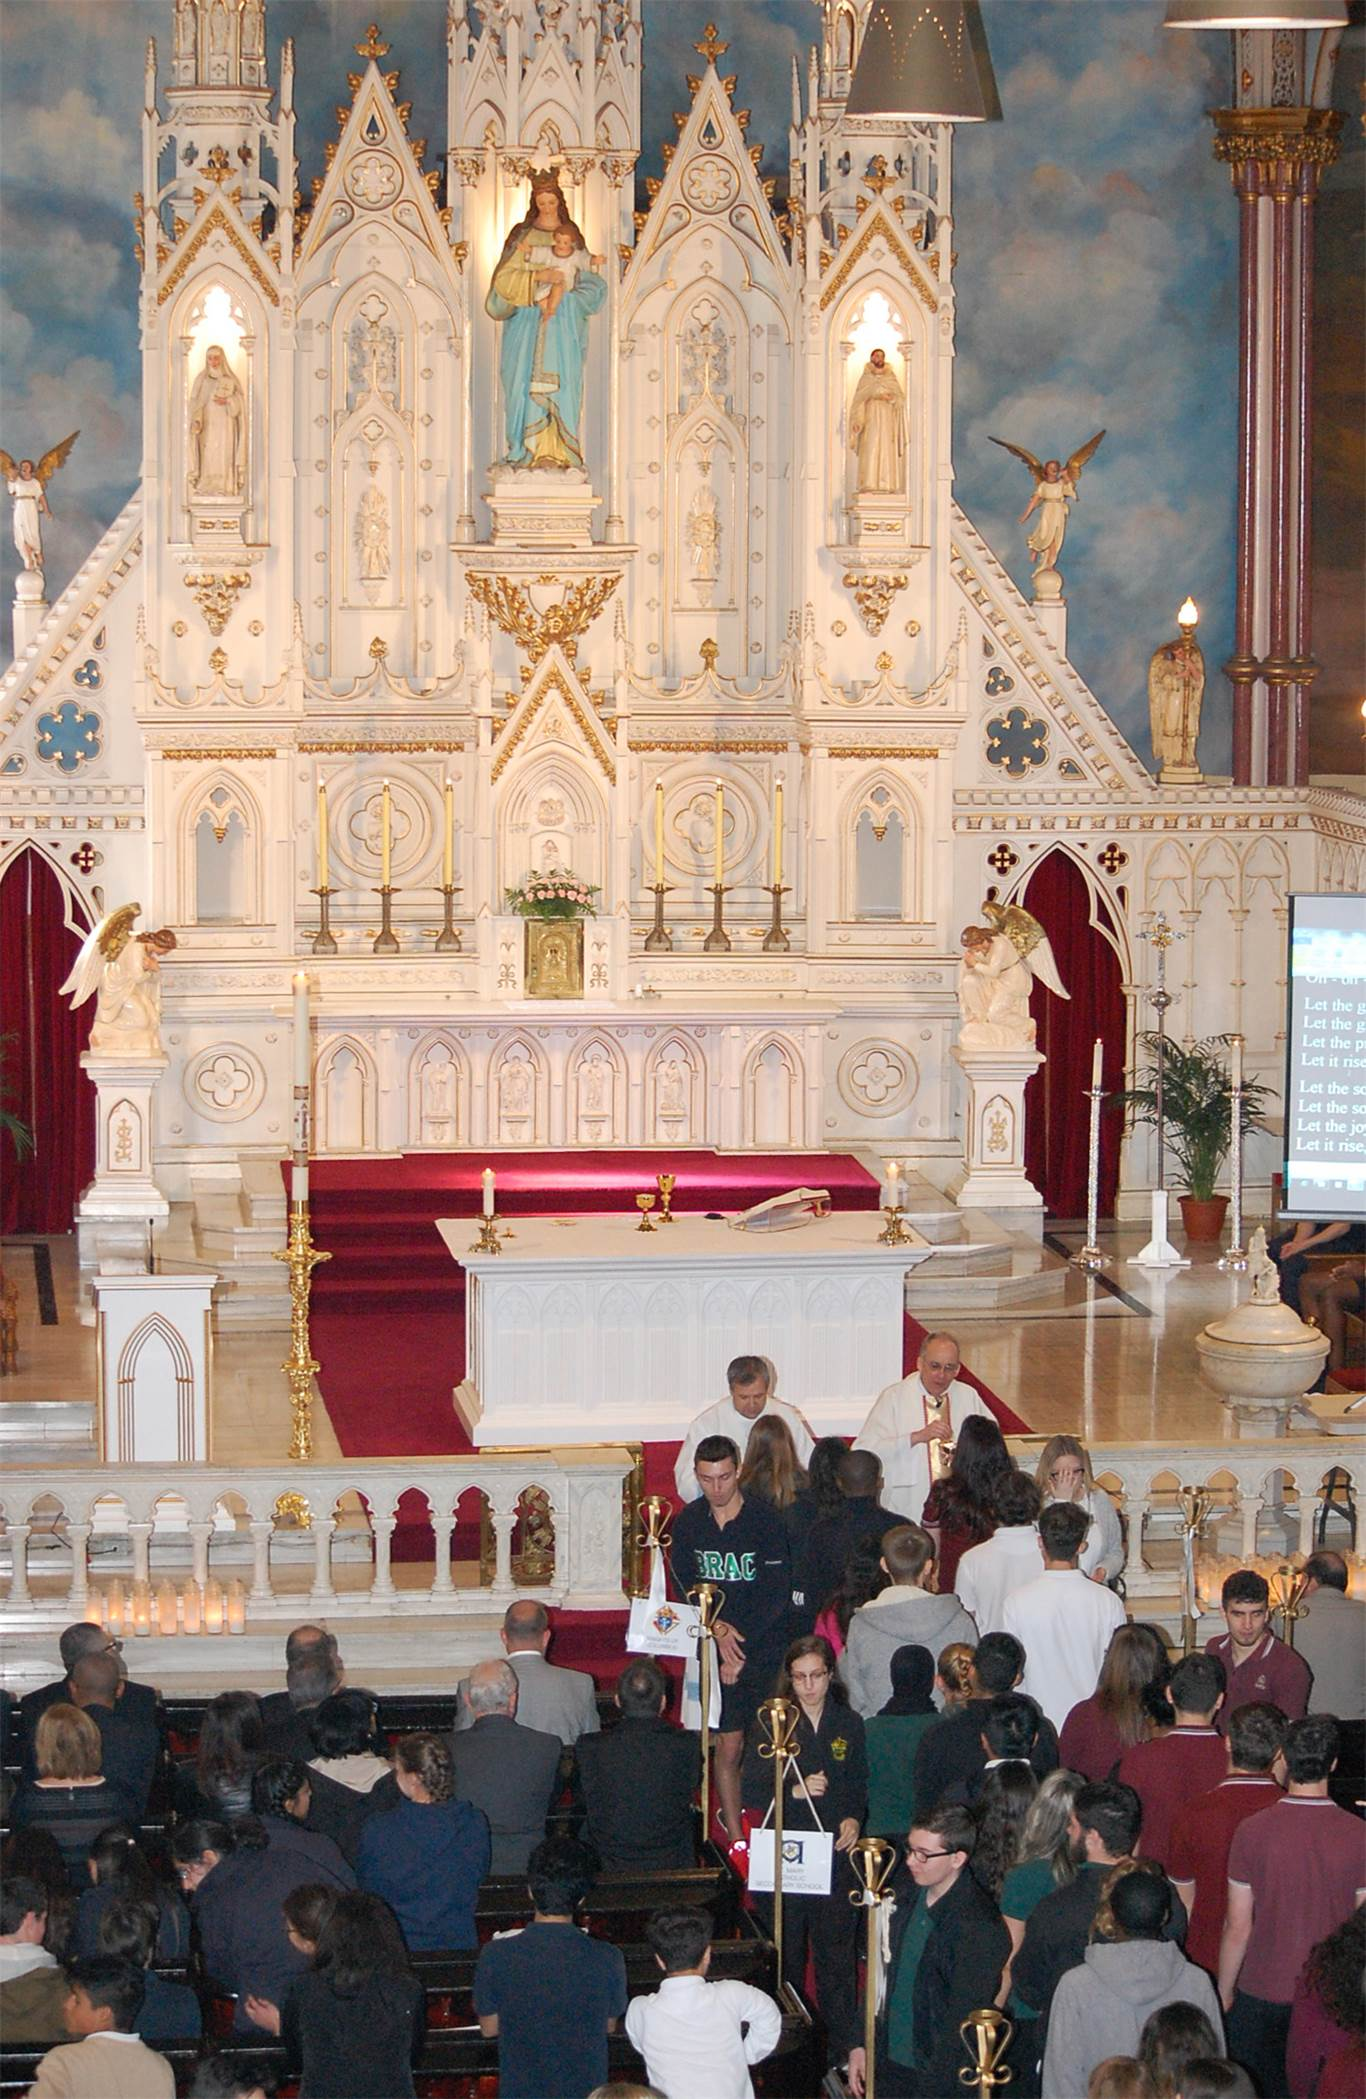 Graduating students give thanks for gift of Catholic Education at a system-wide mass at St. Mary Pro Cathedral on May 10th.